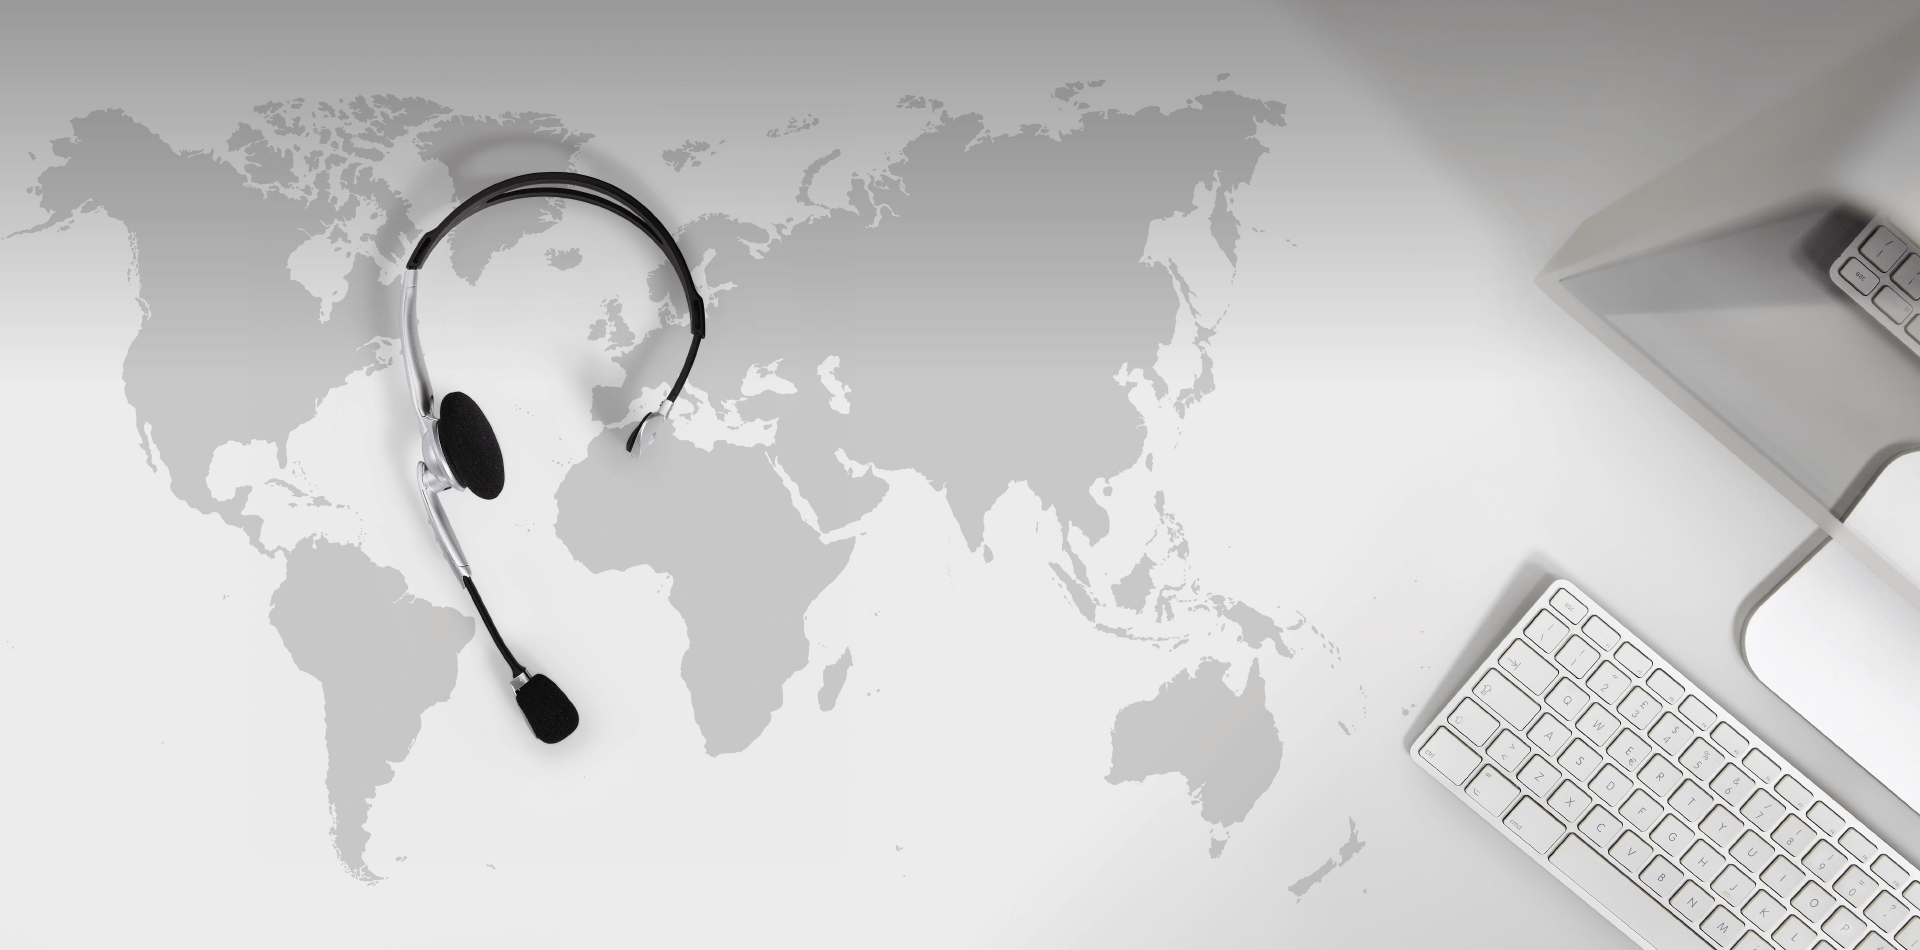 Headphones and a keyboard on top of a world map